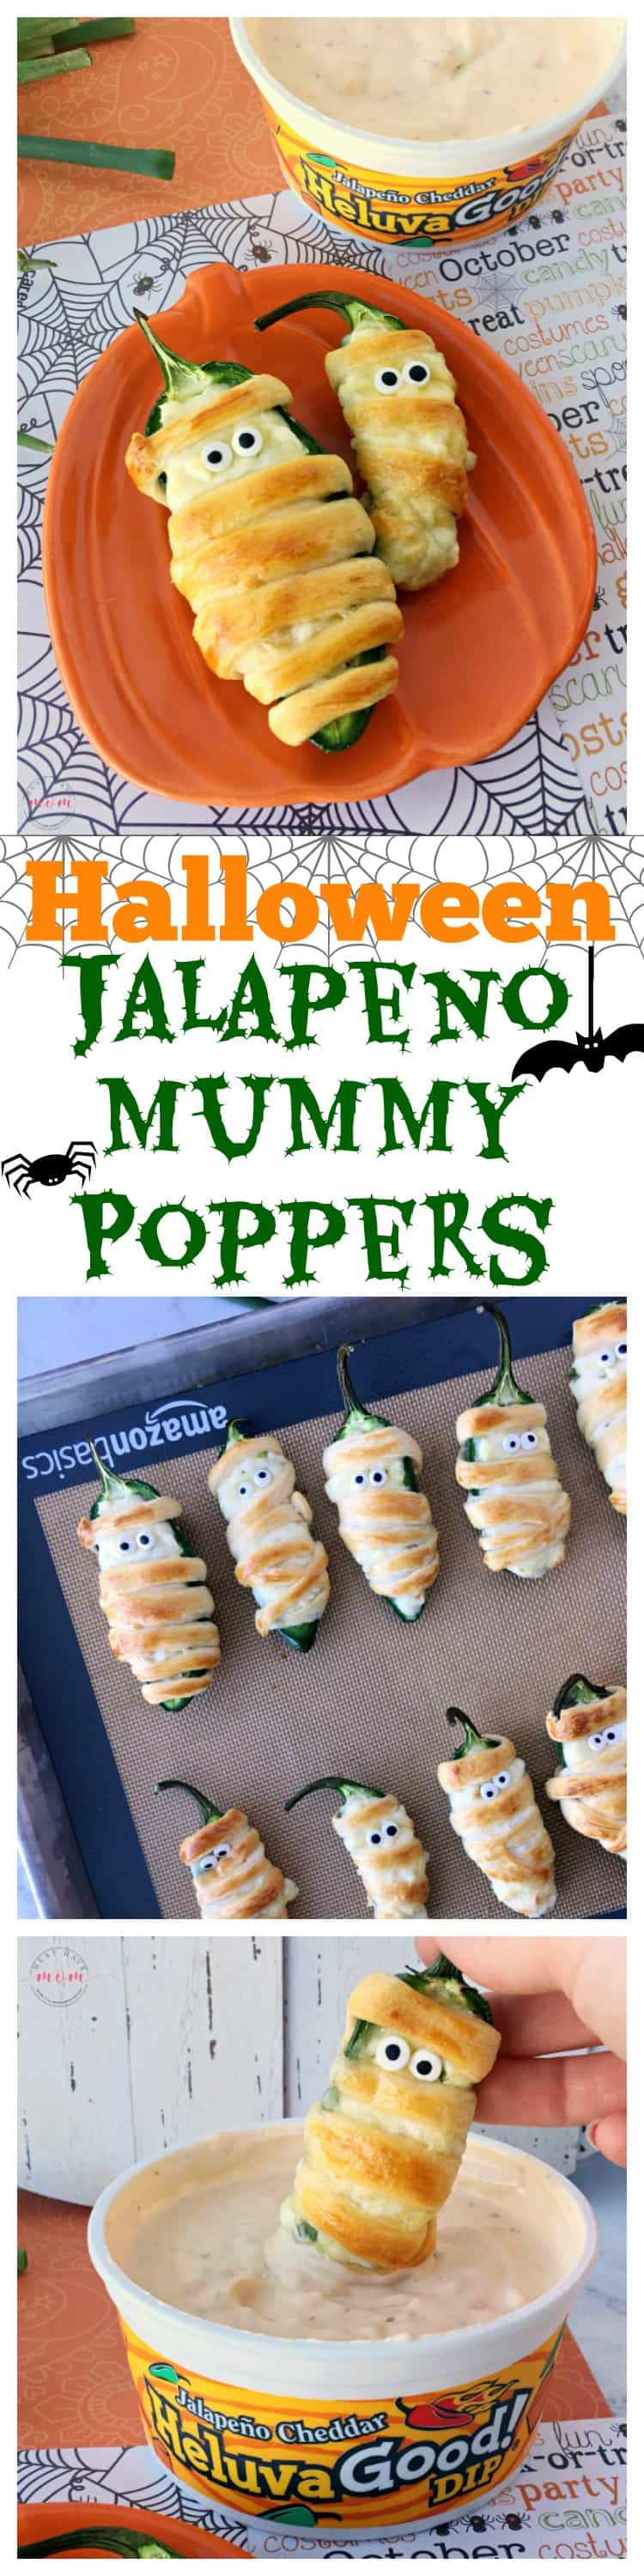 Halloween food idea! Mummy jalapeno poppers in oven. Baked jalapeno poppers are easy and this recipe uses healthier ingredients.